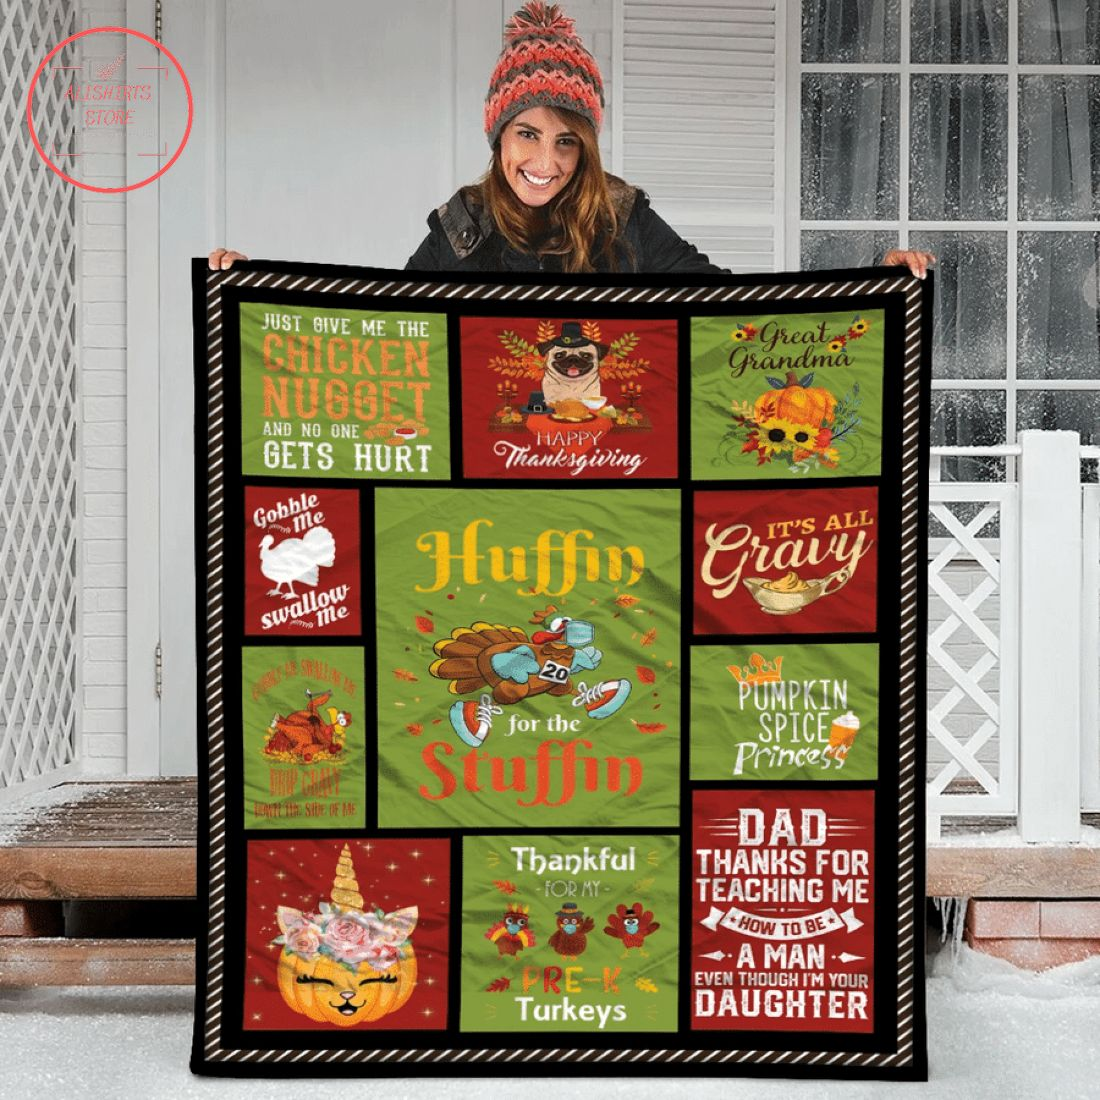 Huffin for the Stuffin Funny Thanksgiving Fleece Blanket